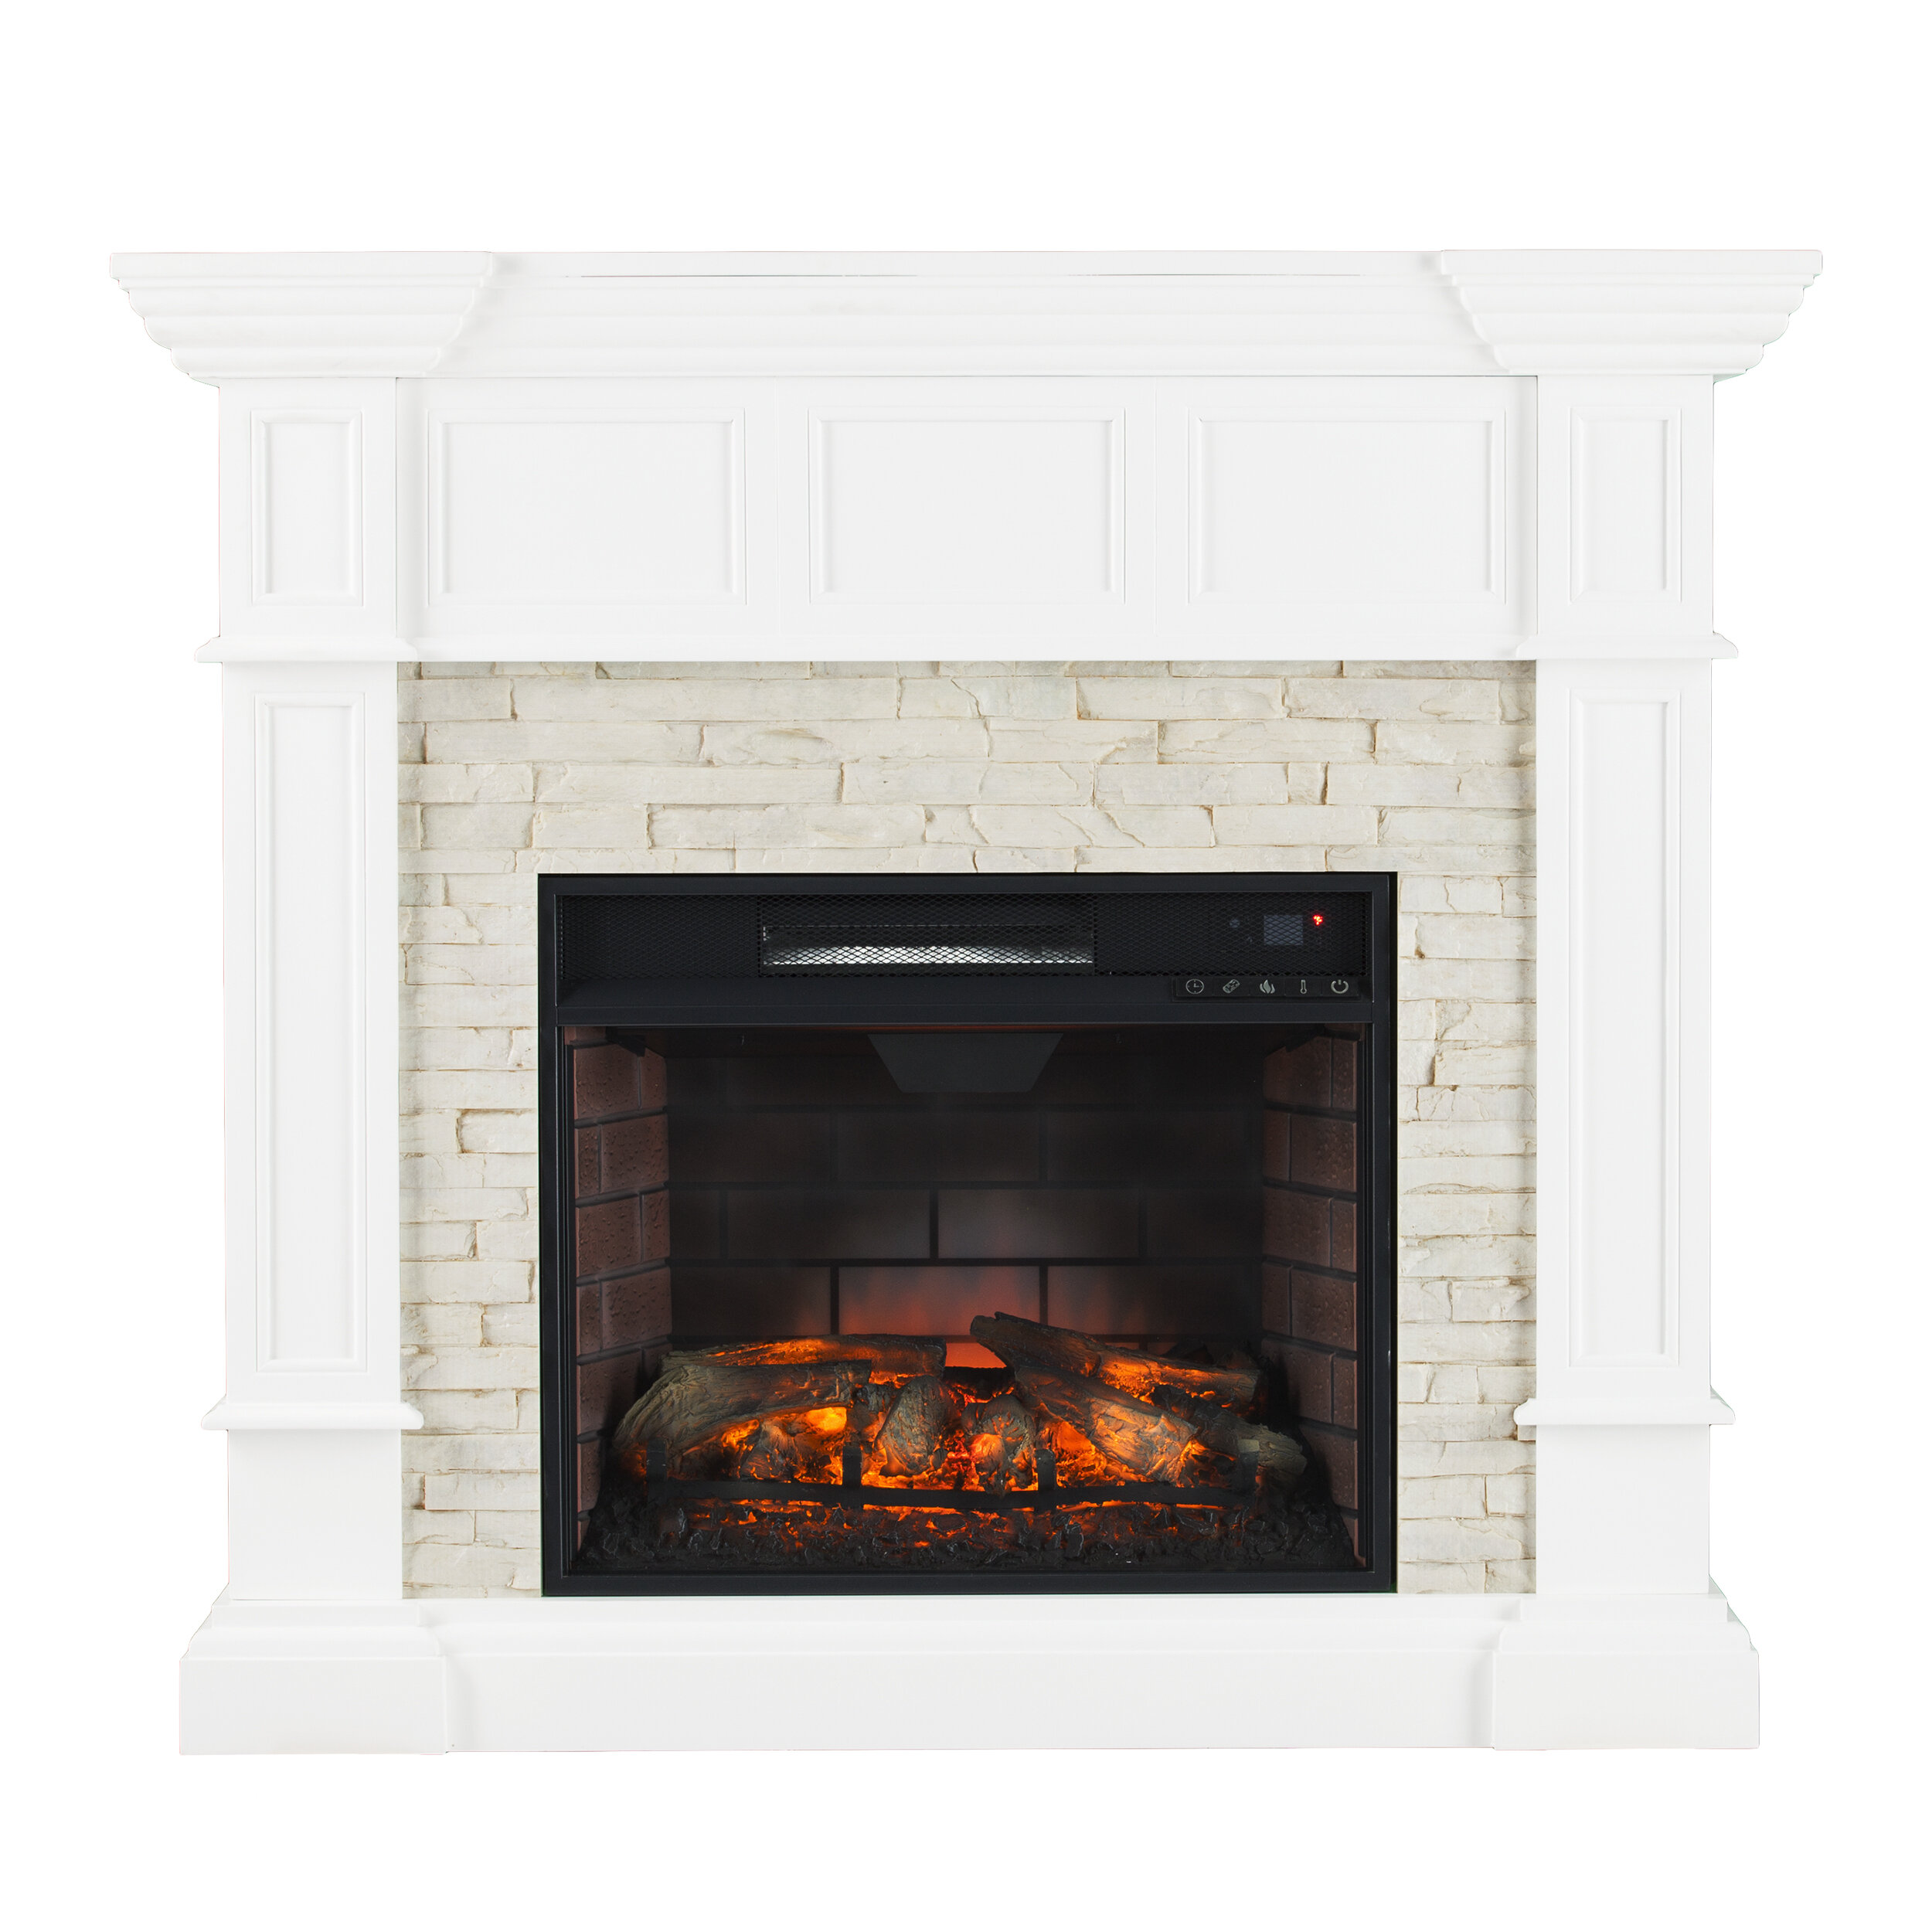 park infrared unlimited fireplaces fireplace furniture buena pdp electric reviews corner convertible main joss